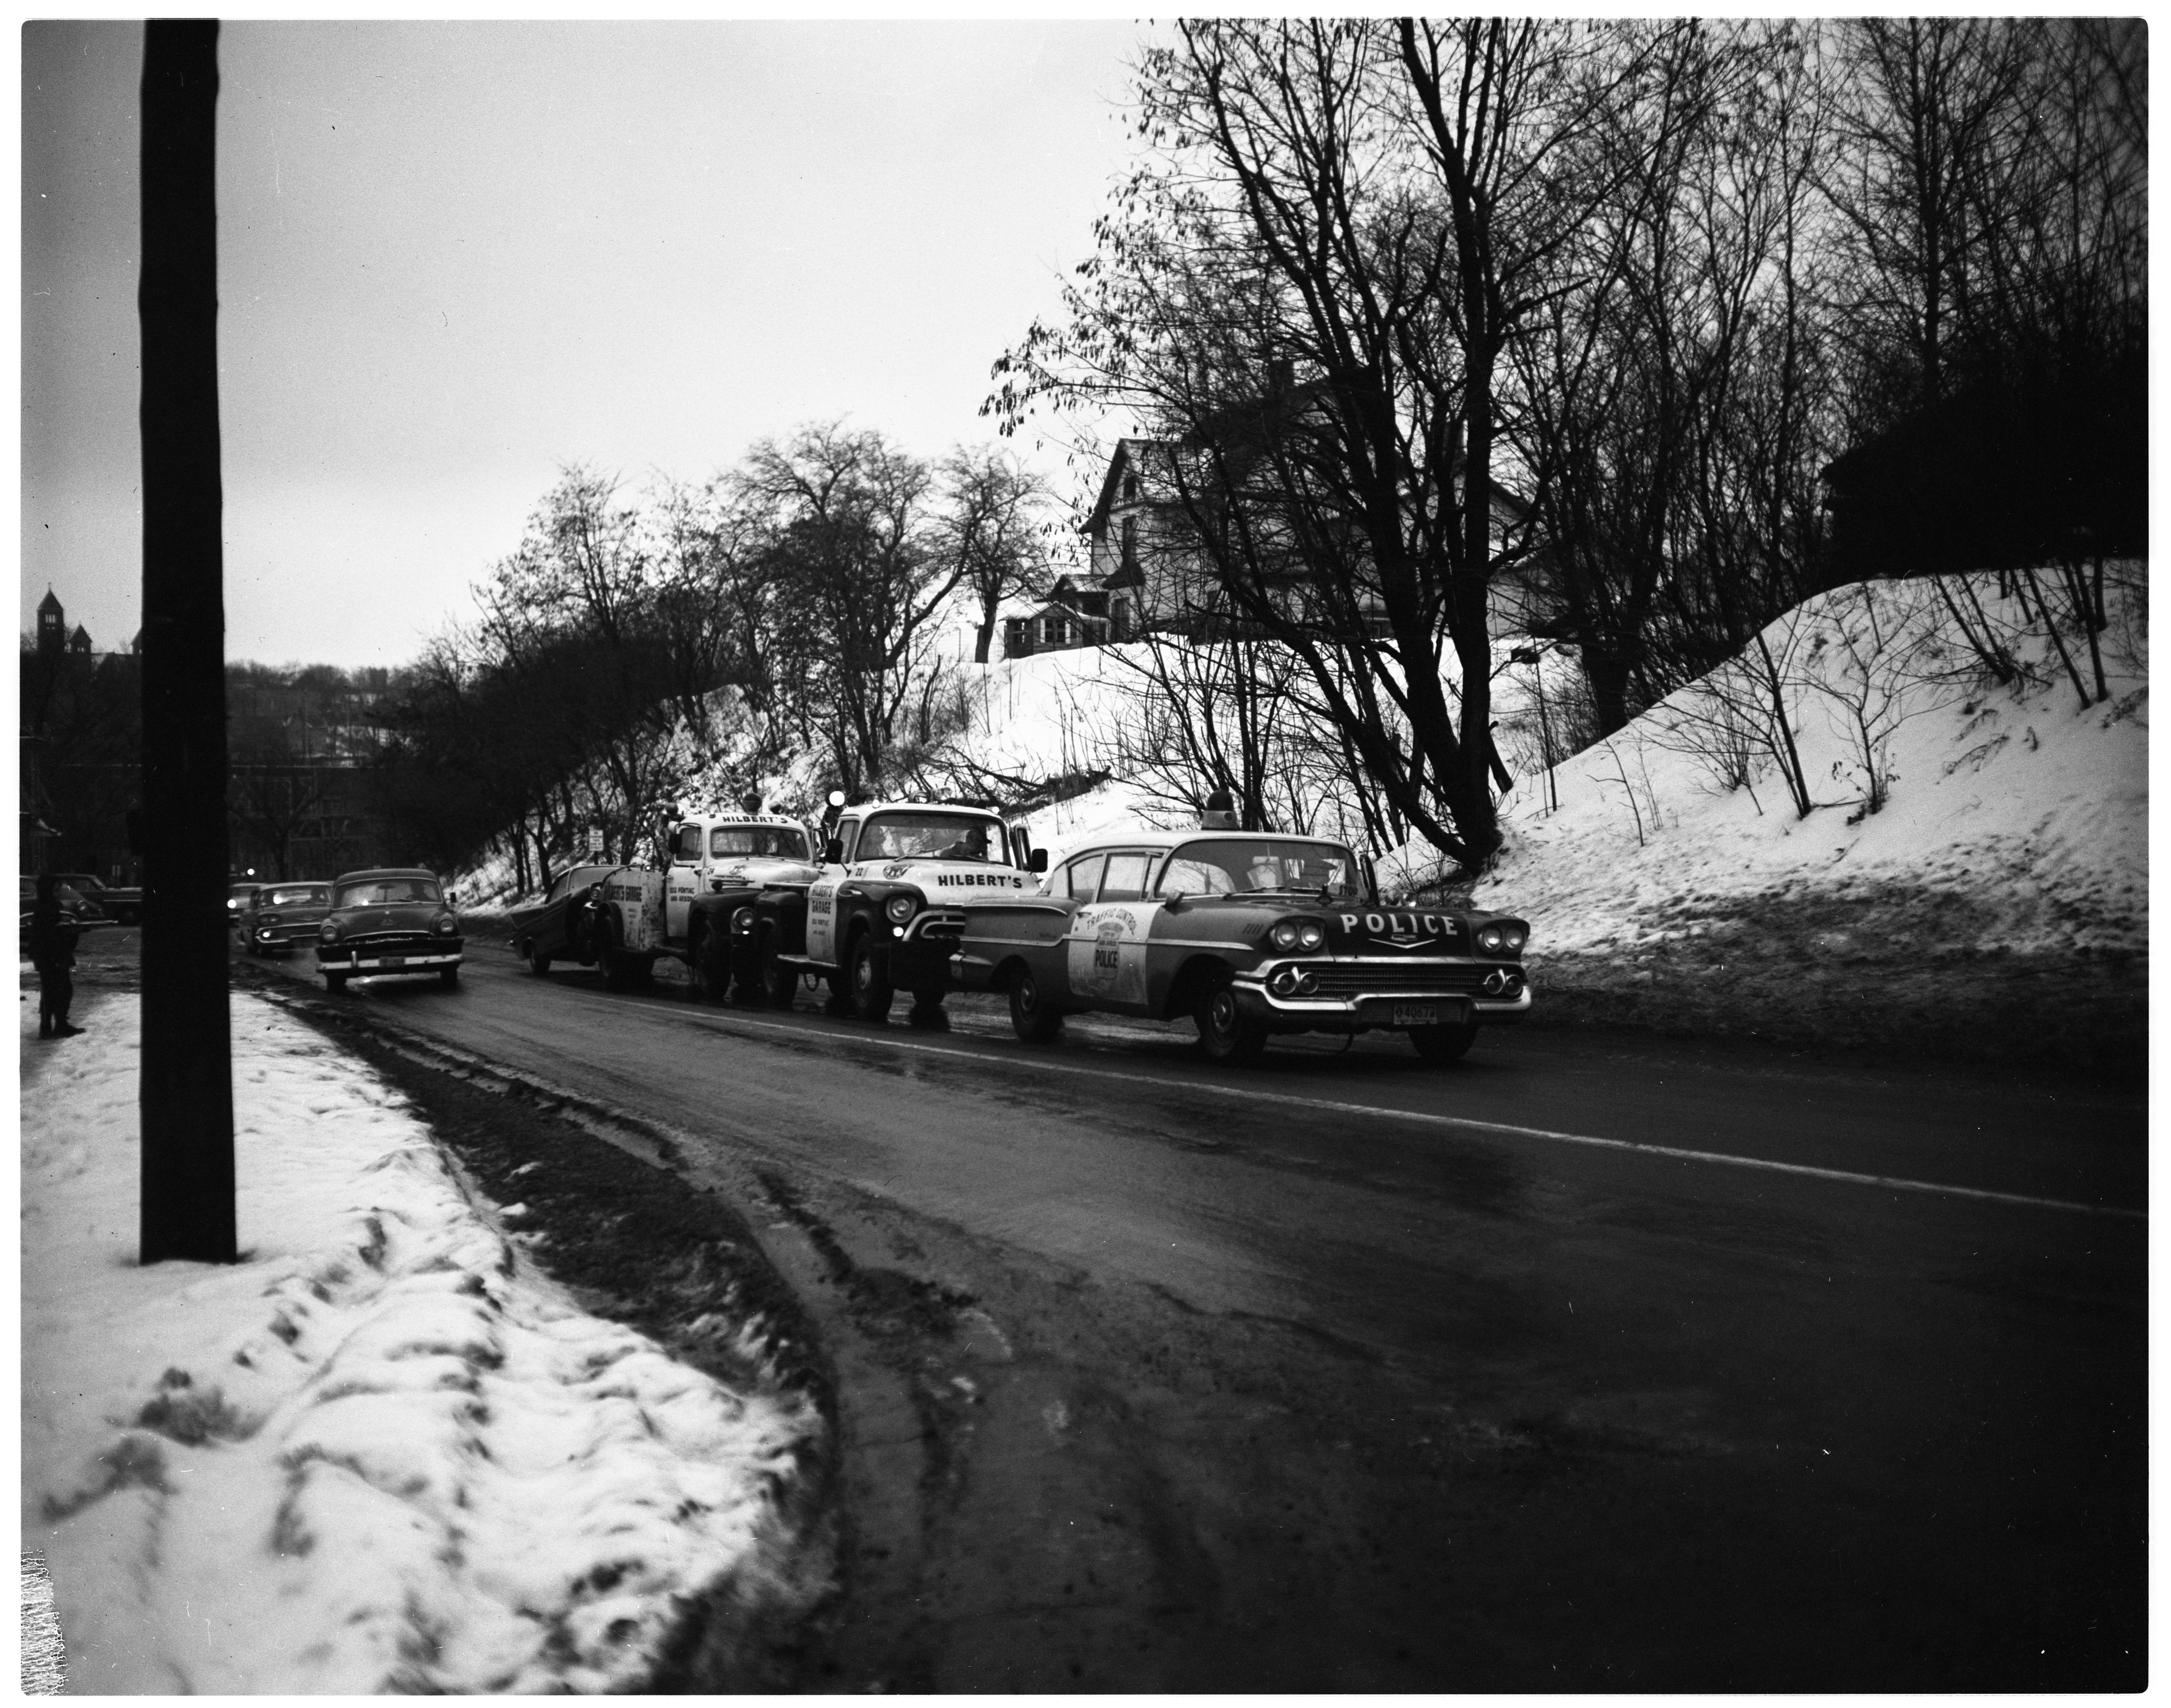 Ann Arbor Police Car Pushed By Wreckers, January 1959 image